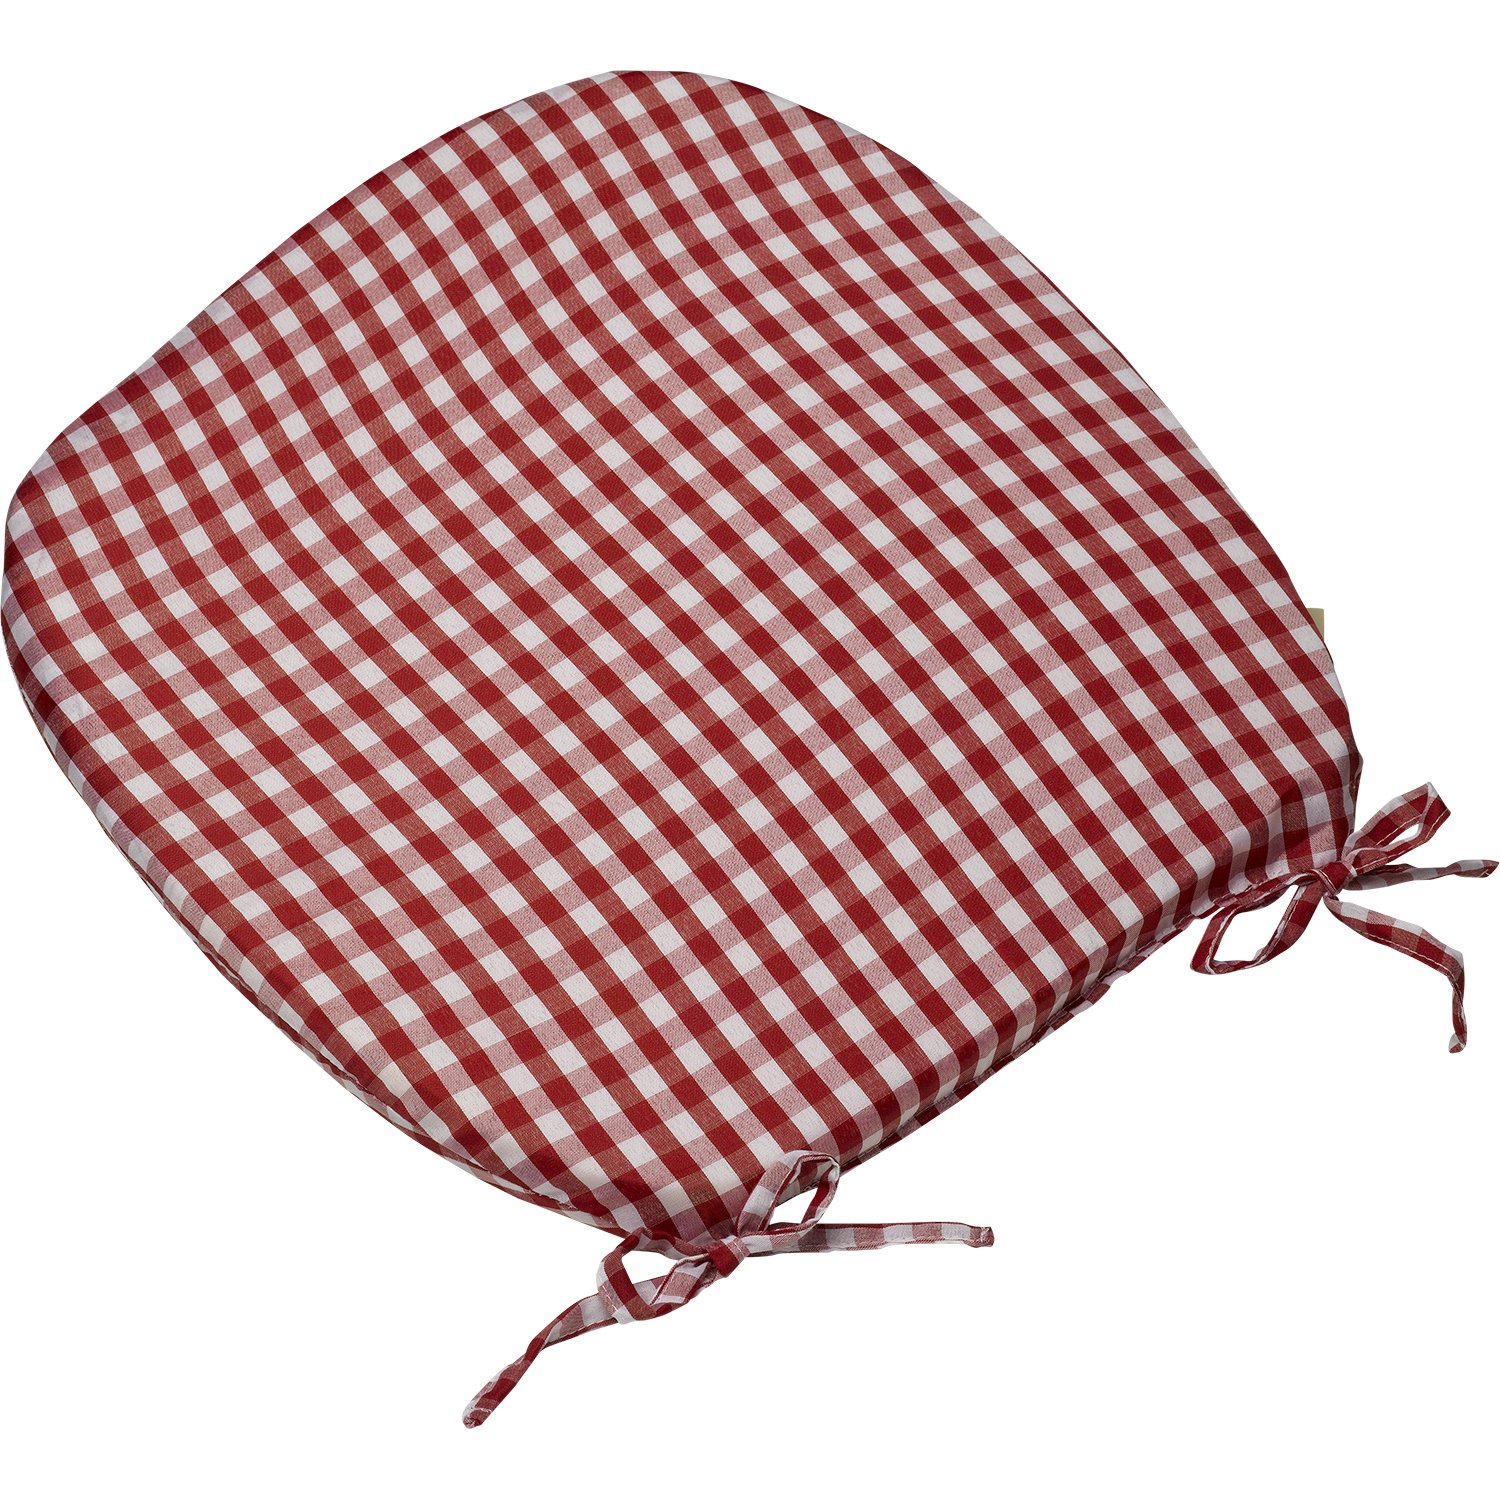 Amazon.com: Gingham Check Round Seat Pad Outdoor Garden Dining ...